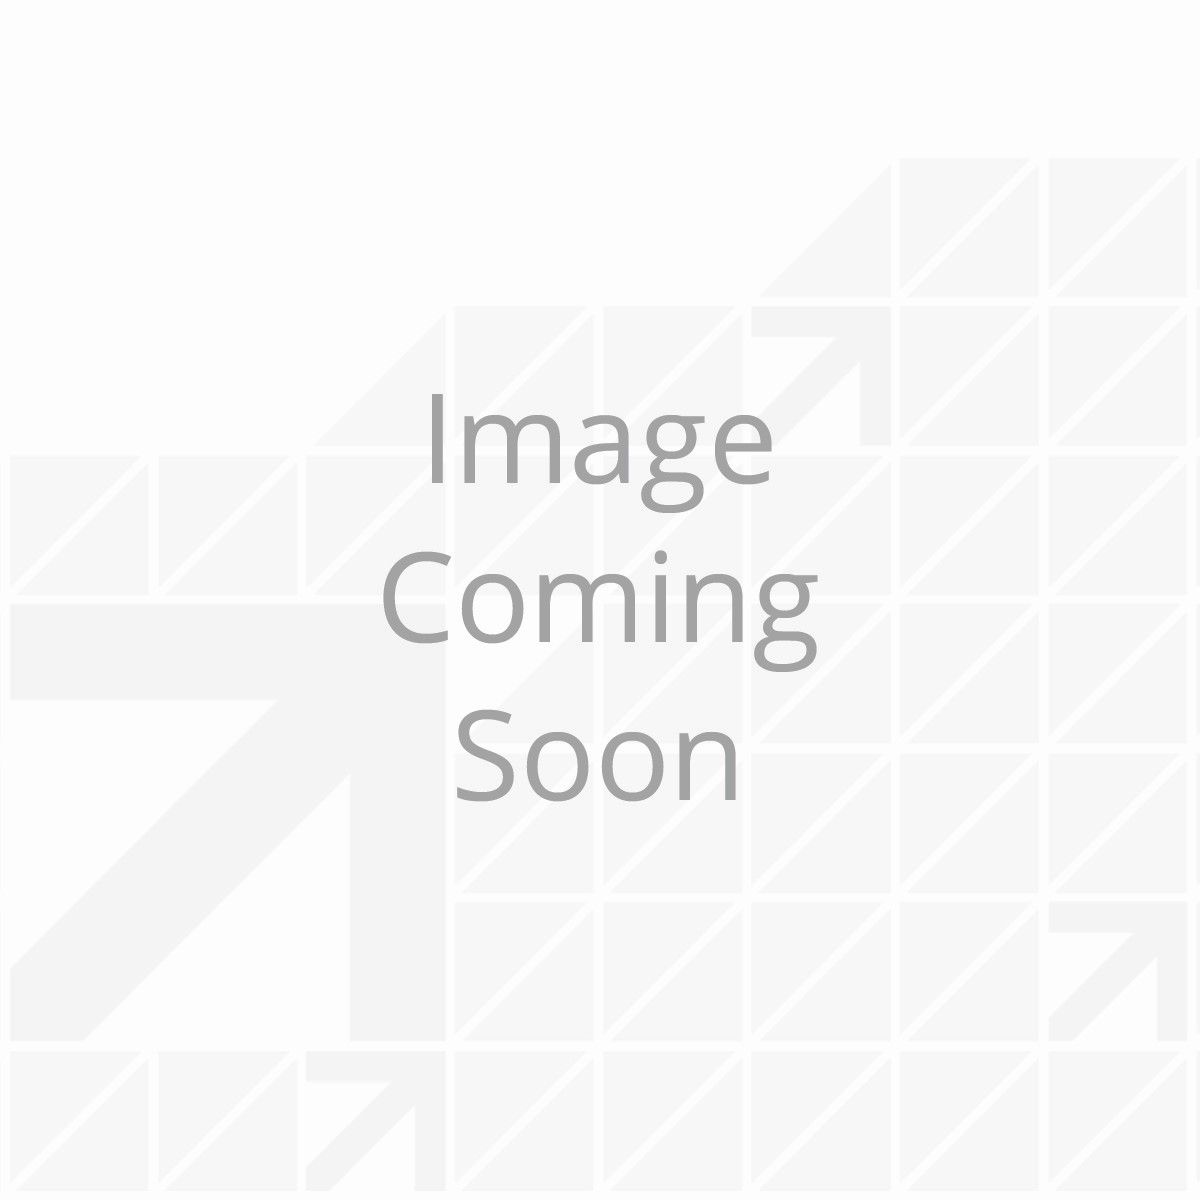 Toylok® Truck Tool Box Mounting Kit